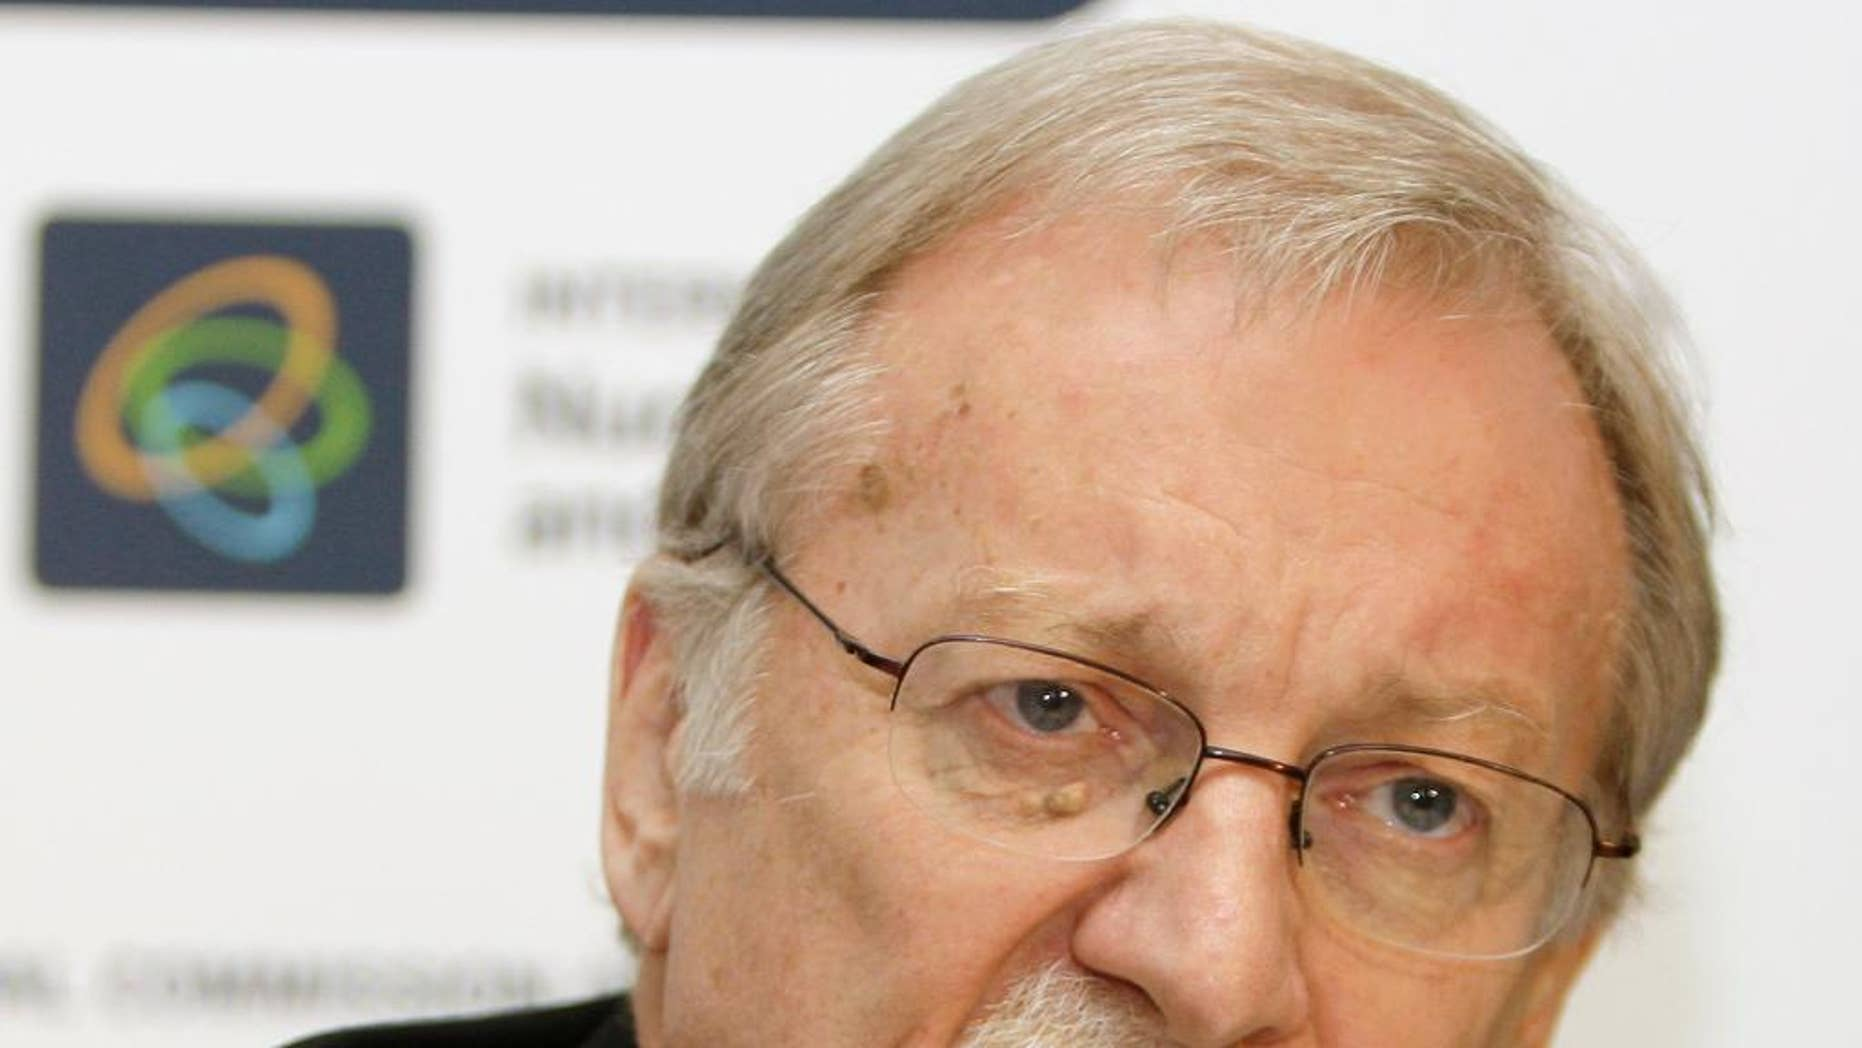 """FILE - In this Oct. 21, 2008, file photo, Gareth Evans, former Australian Foreign Minister, speaks to reporters in Sydney. Evans on Thursday, April 13, 2017, called Donald Trump the most """"psychologically ill-equipped president"""" in U.S. history, and called on Australia to distance itself from the United States in favor of forging closer ties with China. (AP Photo/Rick Rycroft, File)"""